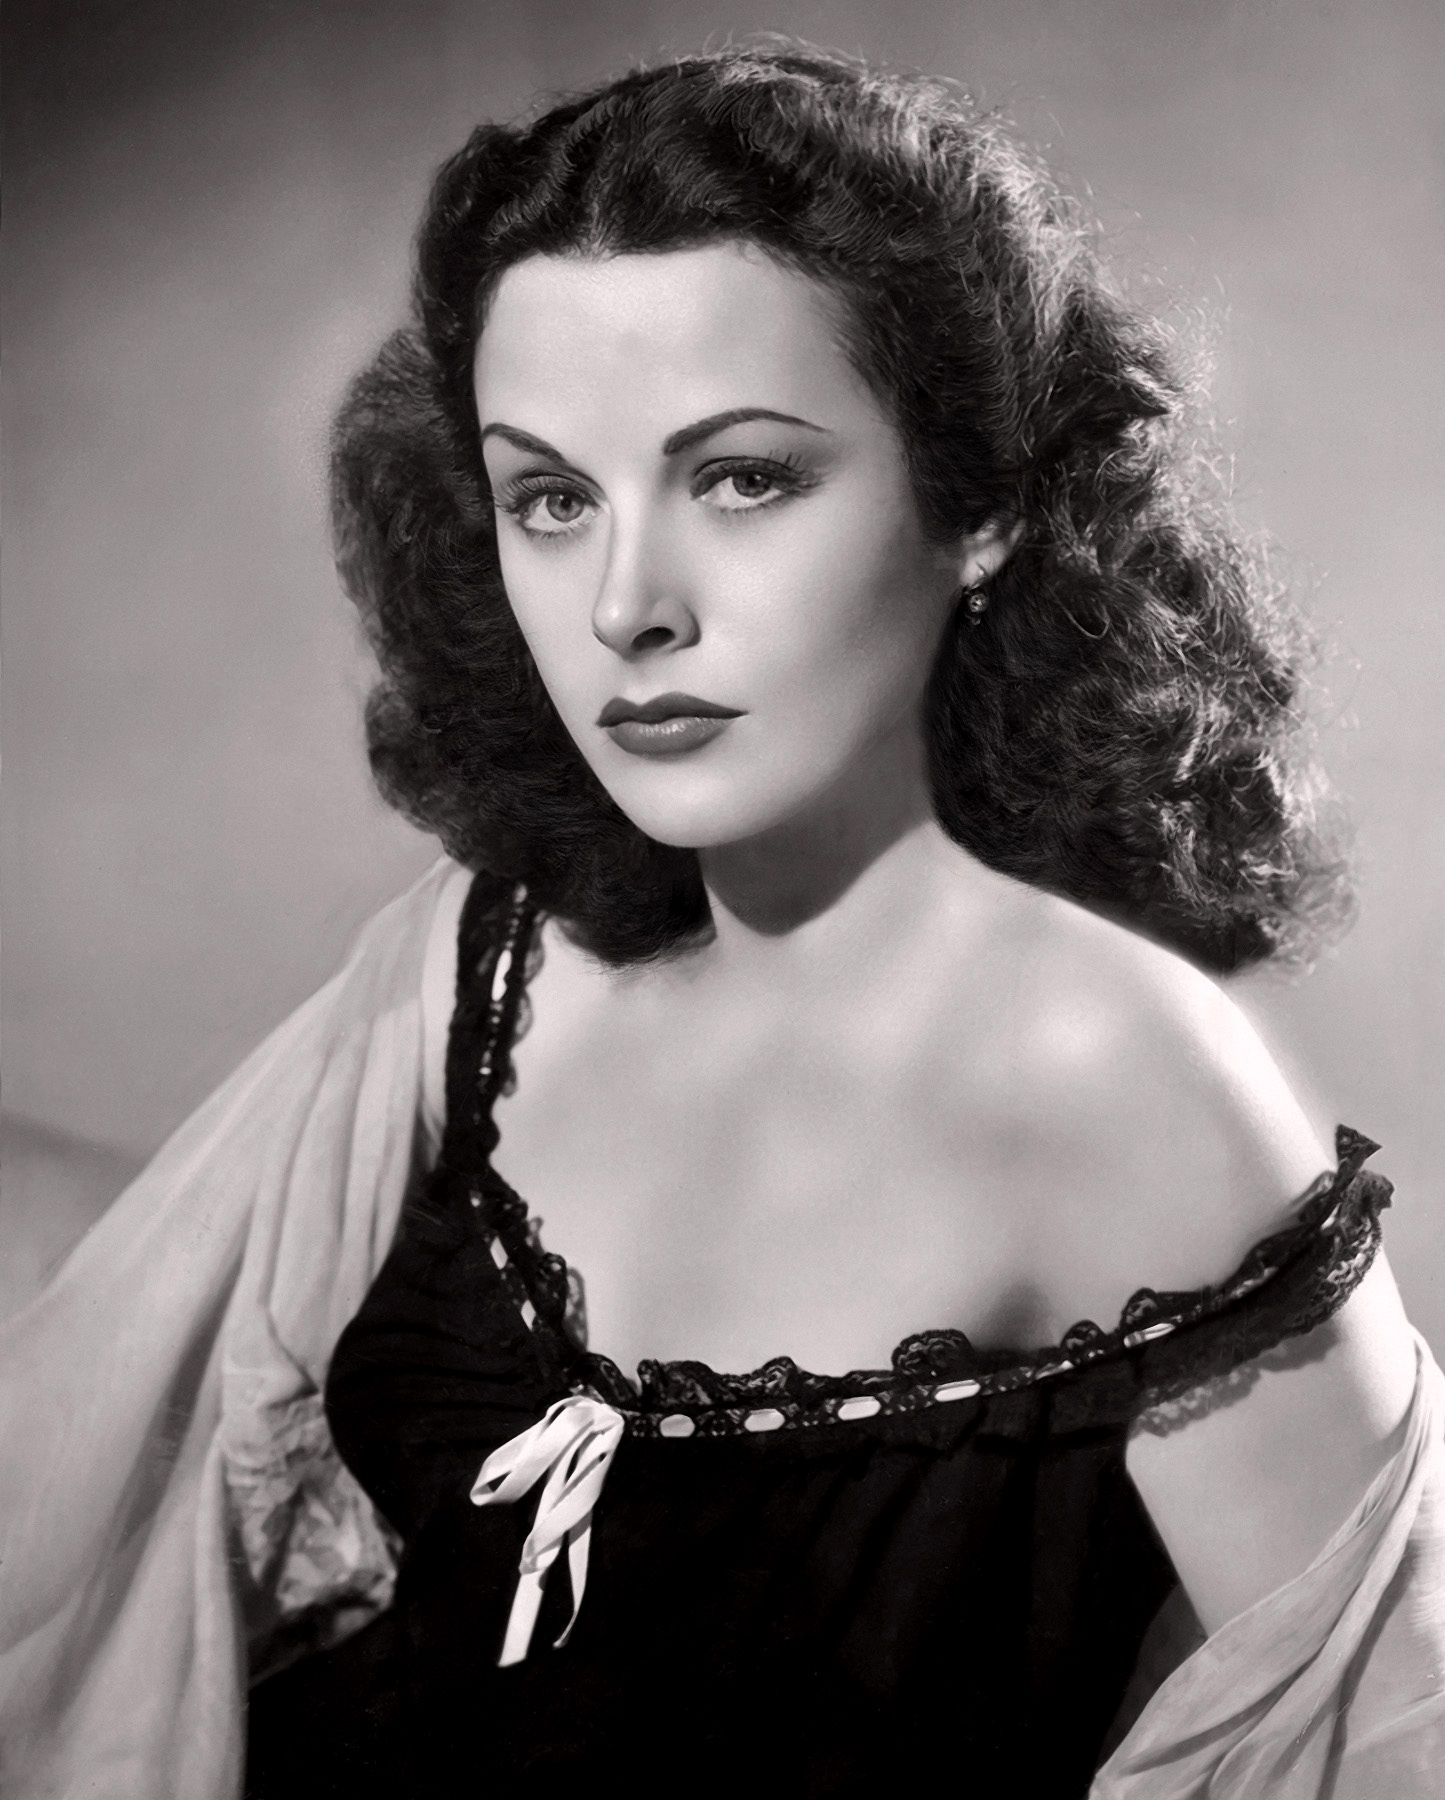 Hedy-Lamarr-classic-movies-9477801-1445-1800 -